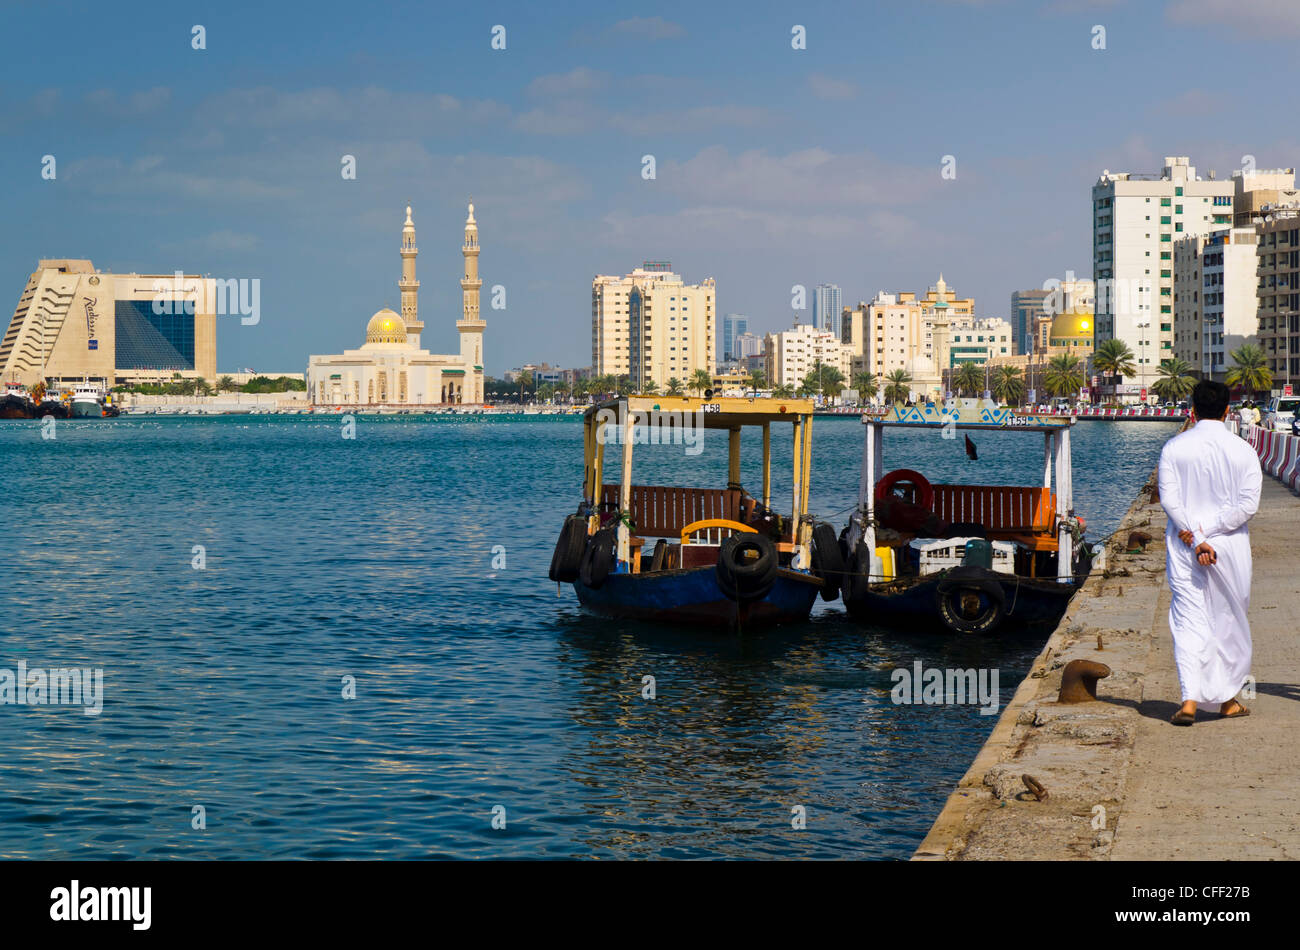 Sharjah Creek, Corniche Mosque and Radisson Blu Resort Hotel, Sharjah, United Arab Emirates, Middle East - Stock Image